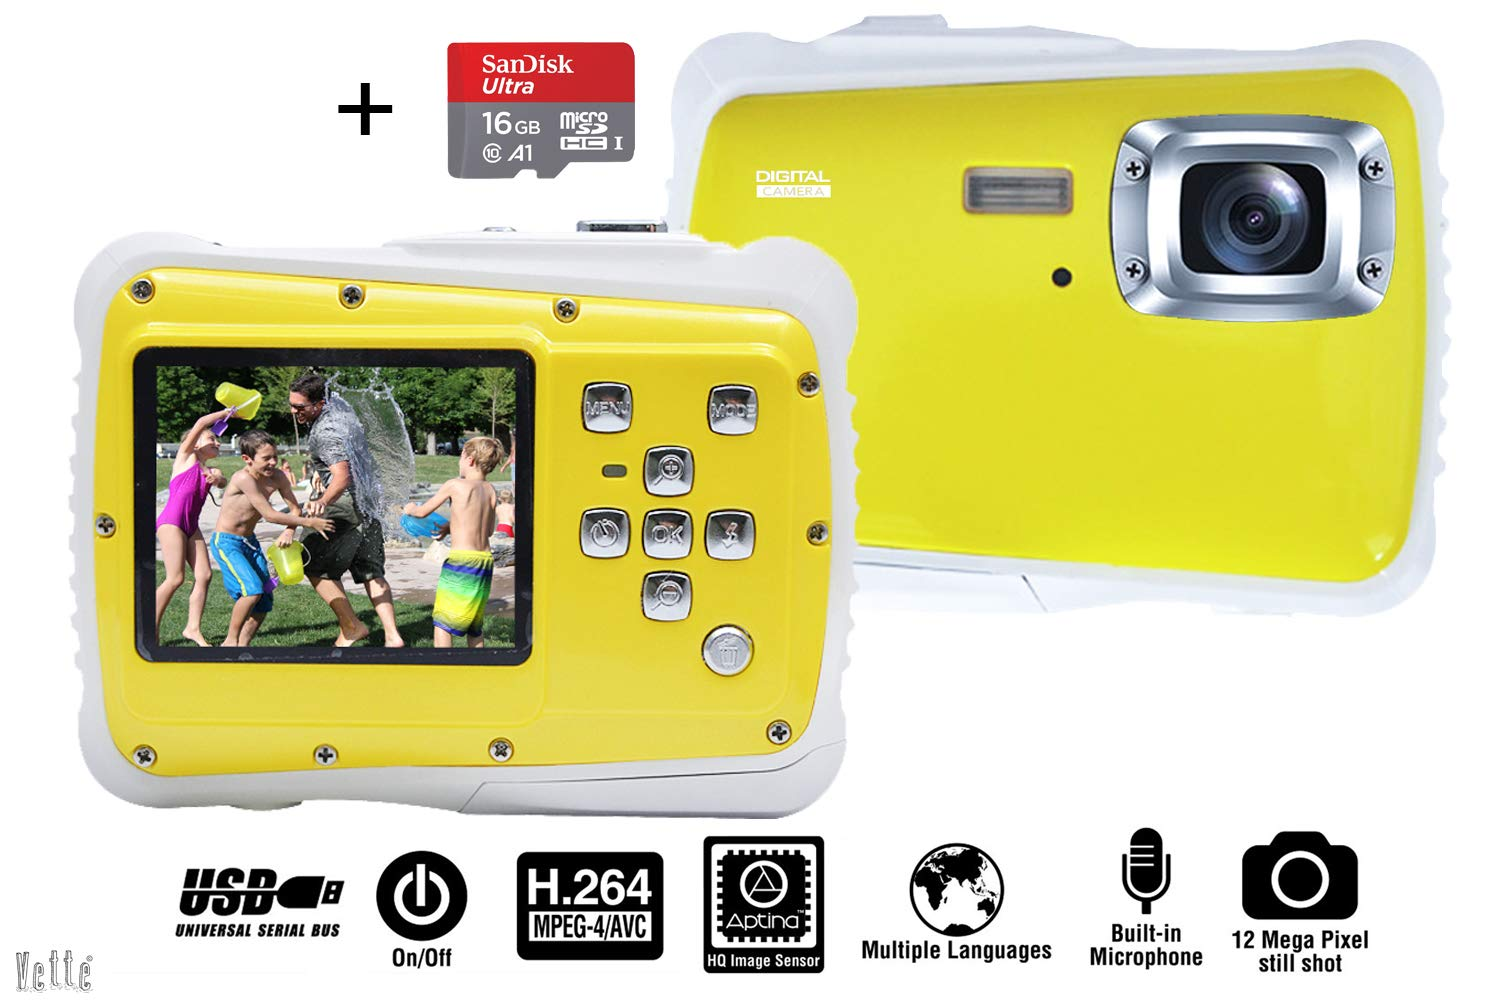 Vetté Digital Camera for Kids with 16GB MicroSD Card Included - Kids Camera Waterproof - 4X Zoom, up to 12MP, 720 HD Underwater Video Quality, TFT LCD Screen for Kids (Yellow) by Vetté (Image #1)